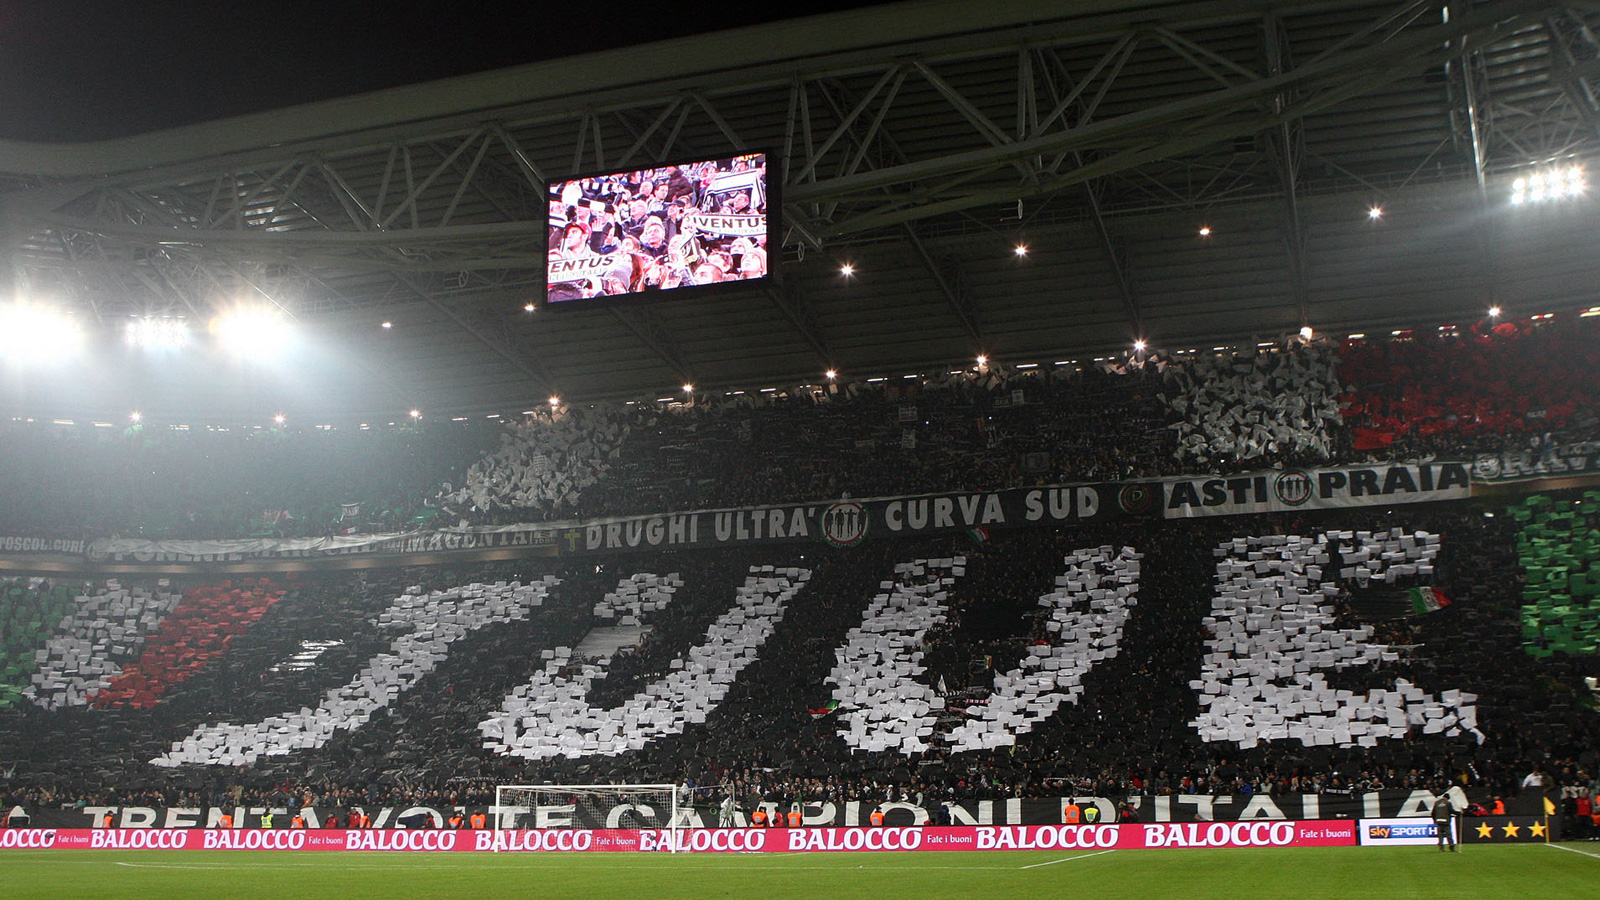 Juventus fans make a statement in Turin in a match vs. Inter Milan.